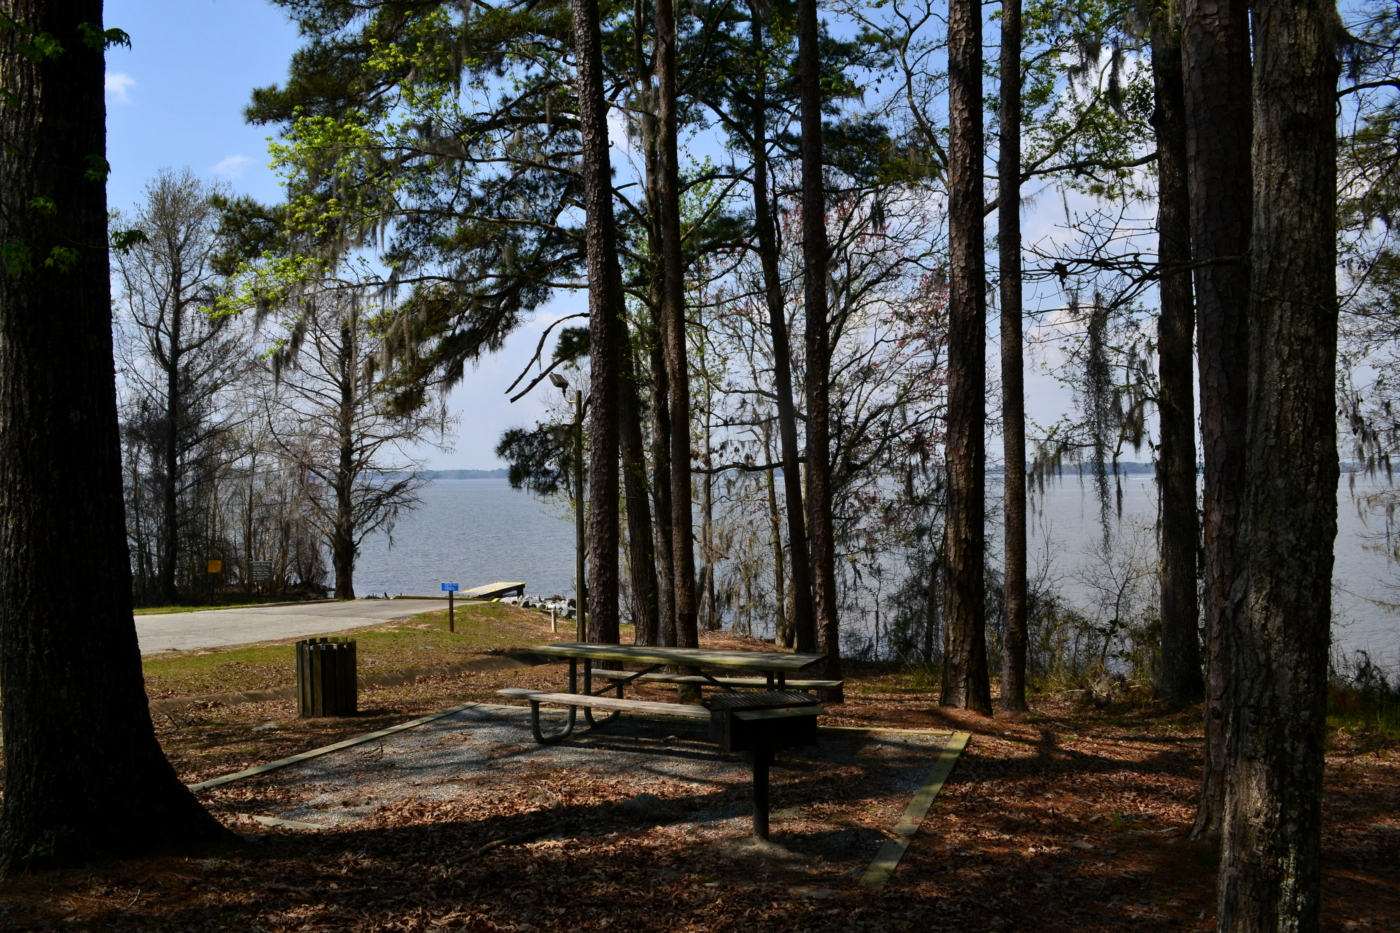 A primitive camping site along the water.